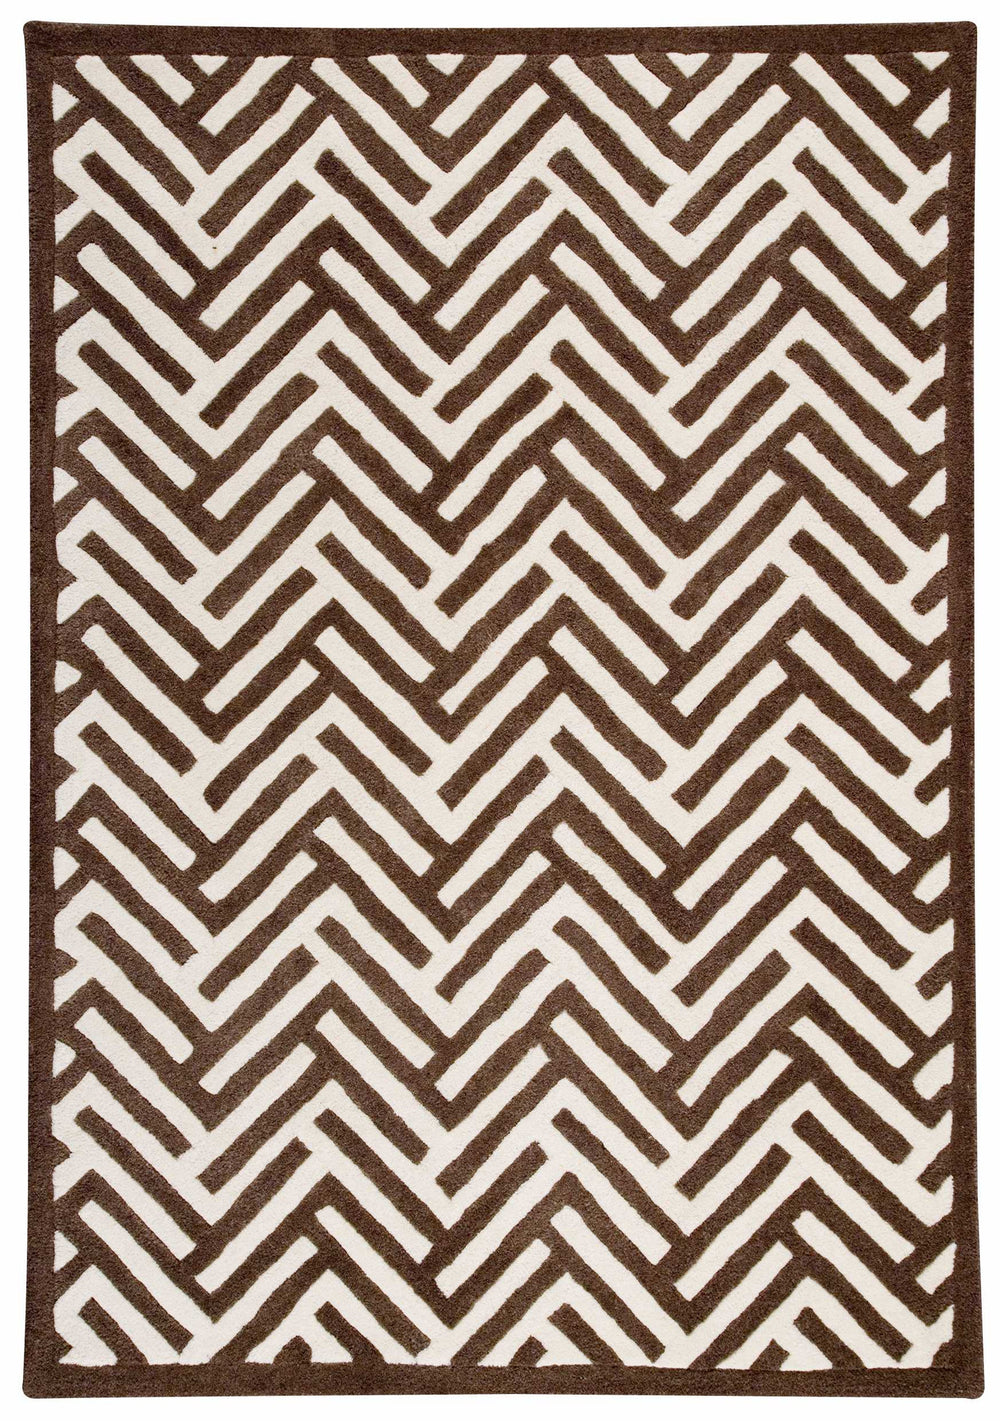 MAT The Basics 12WT Portland Area Rug